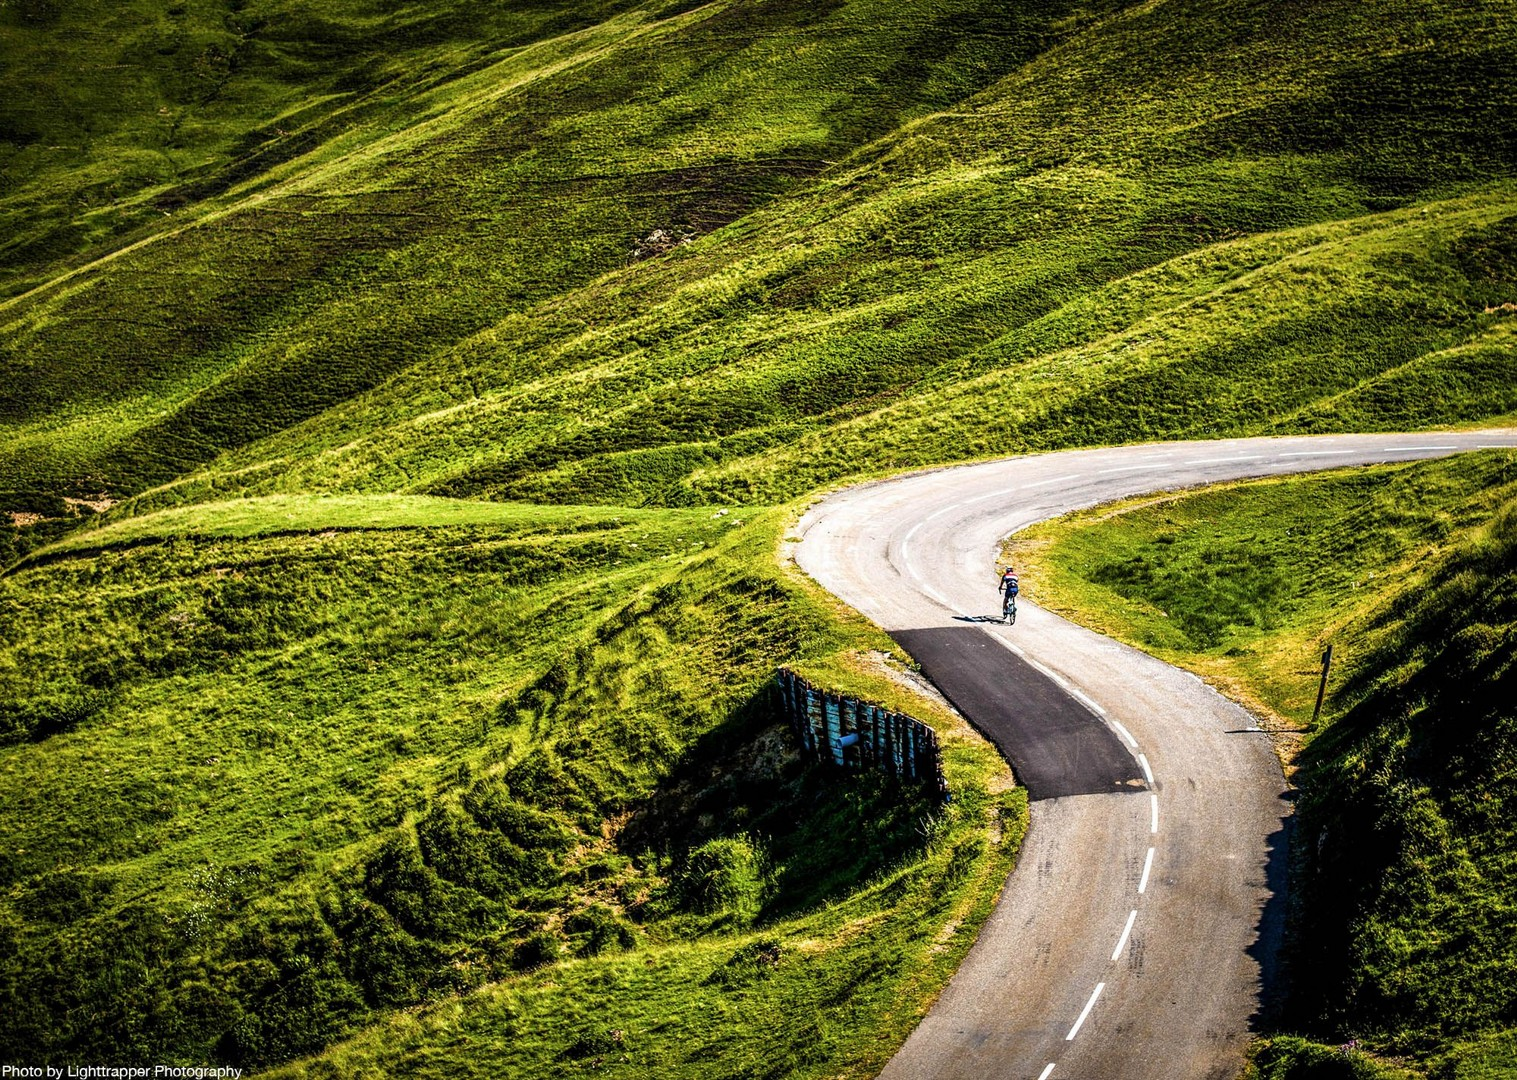 pyrenees-fitness-week-road-cycling-guided-challenge.jpg - France - Pyrenees Fitness Week (Grade 3-4) - Guided Road Cycling Holiday - Road Cycling